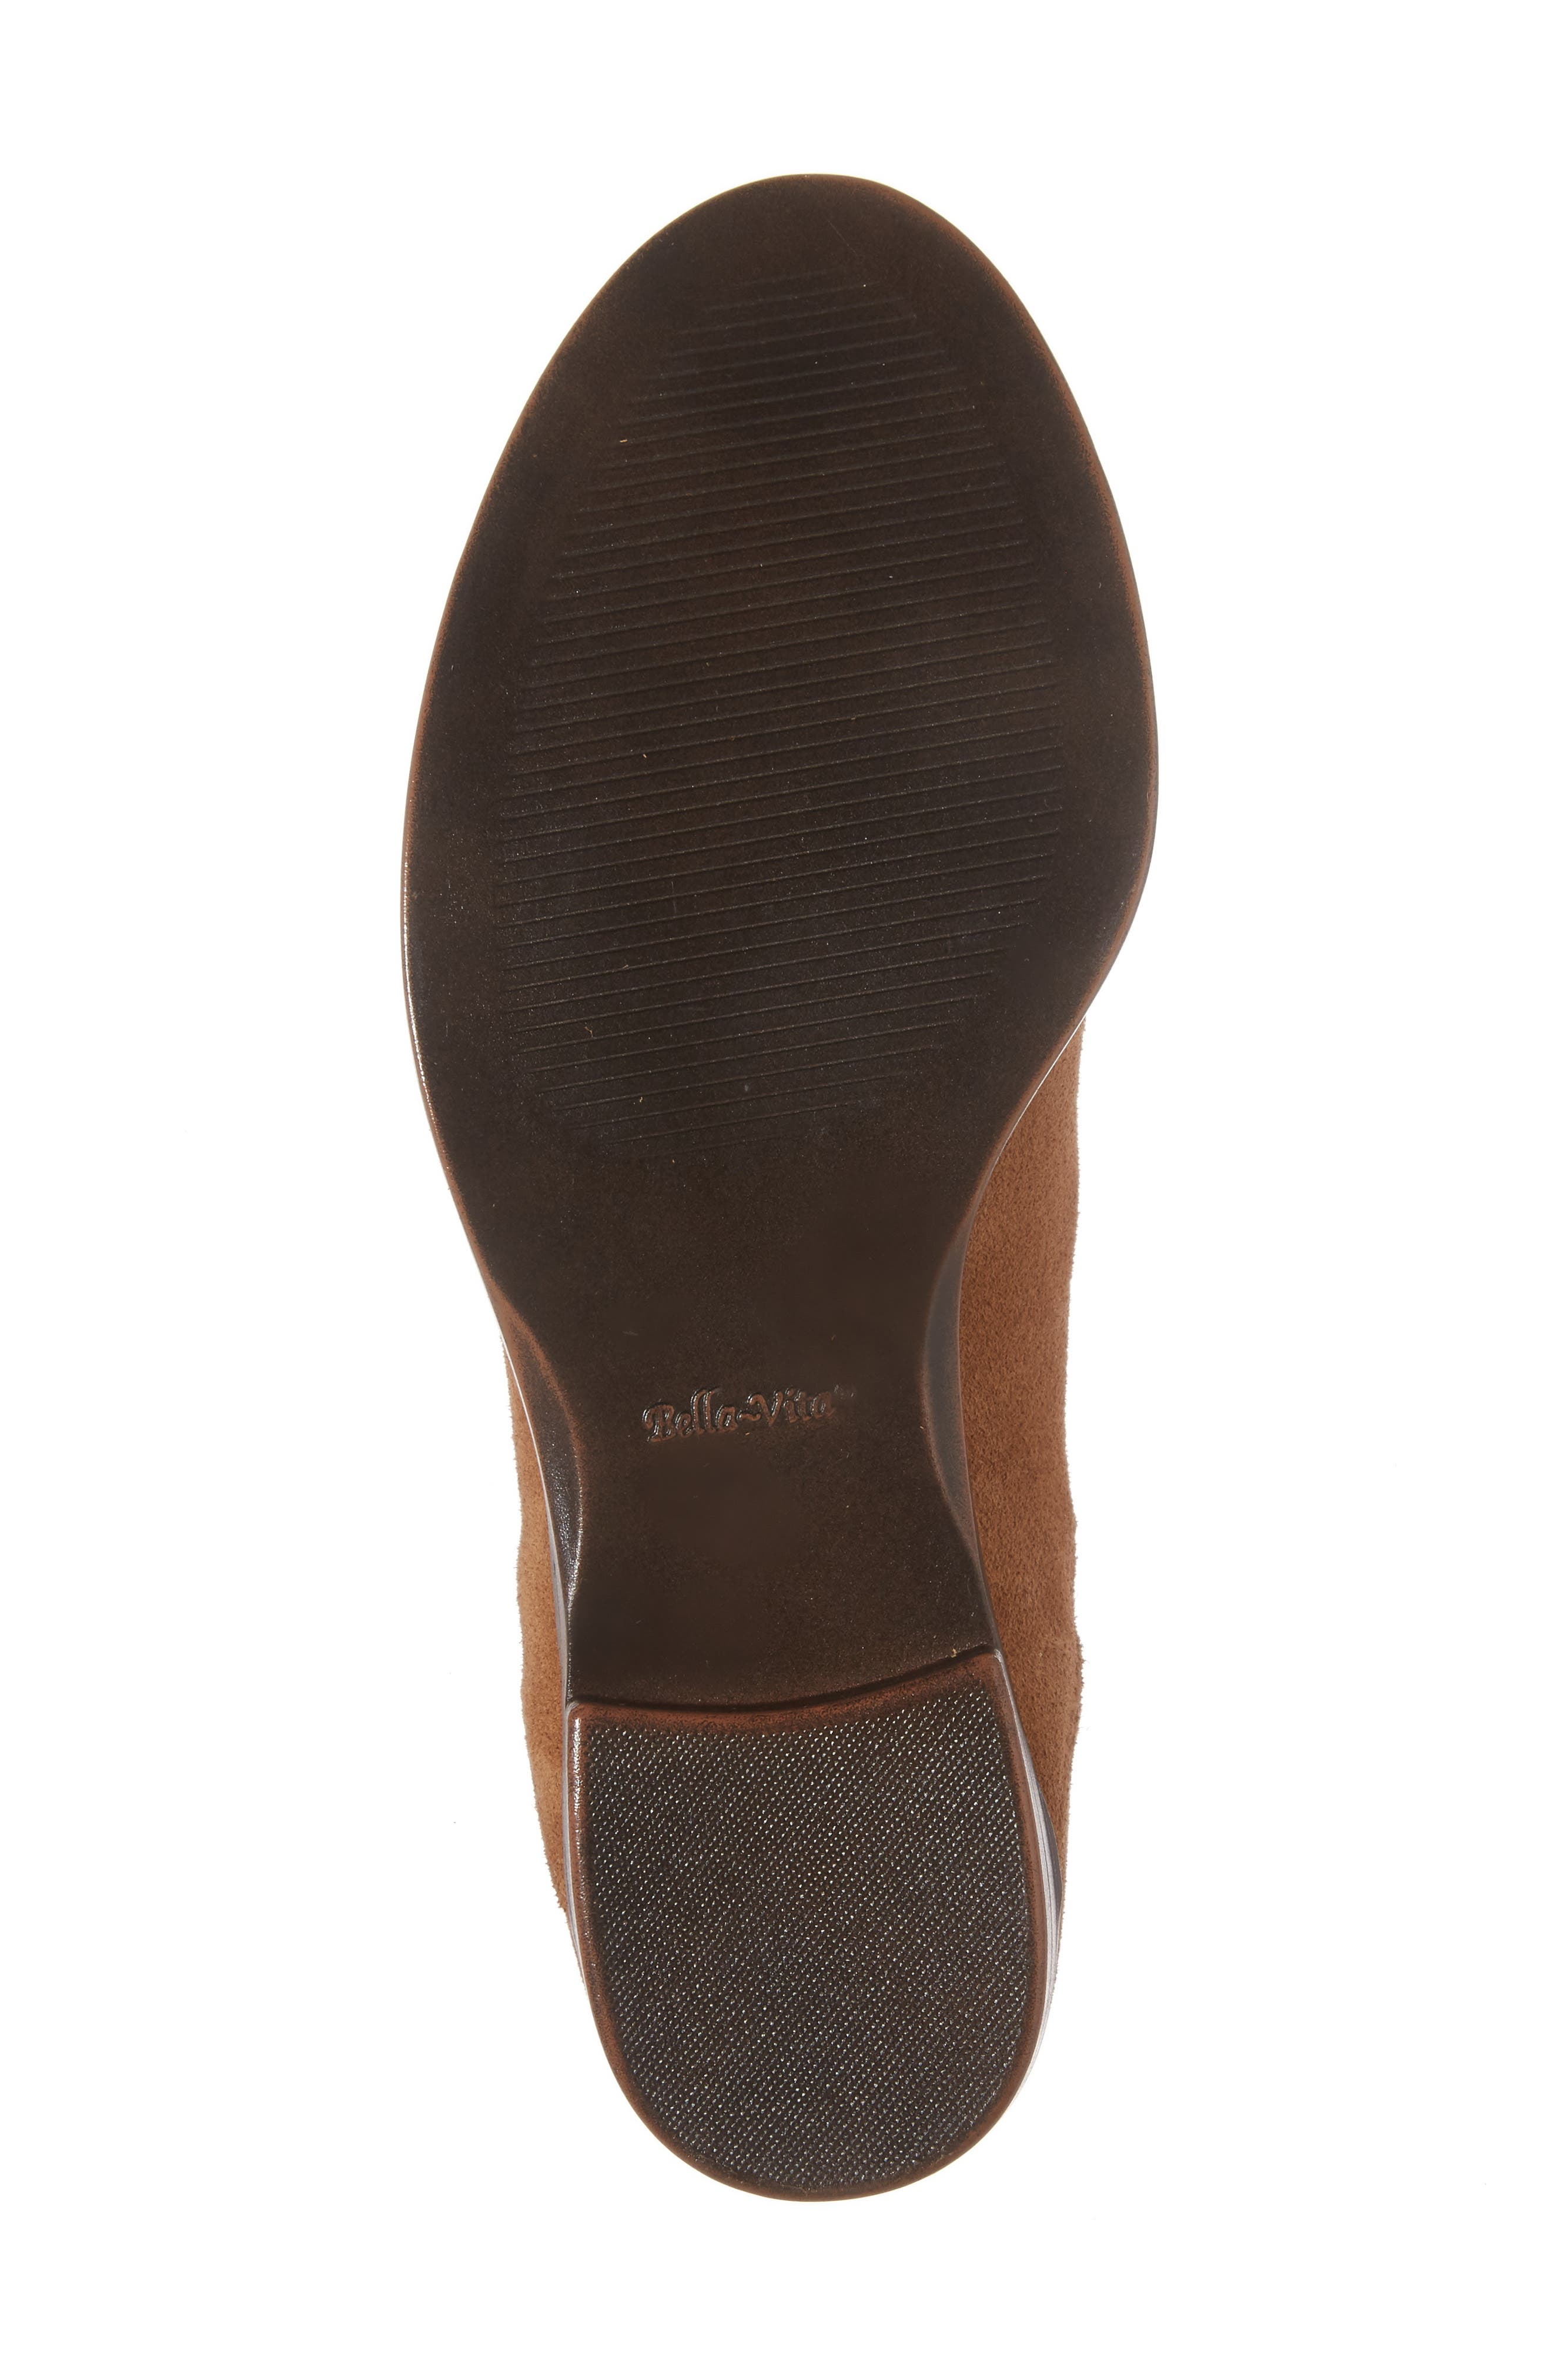 Rayna Chelsea Boot,                             Alternate thumbnail 5, color,                             Tan Suede